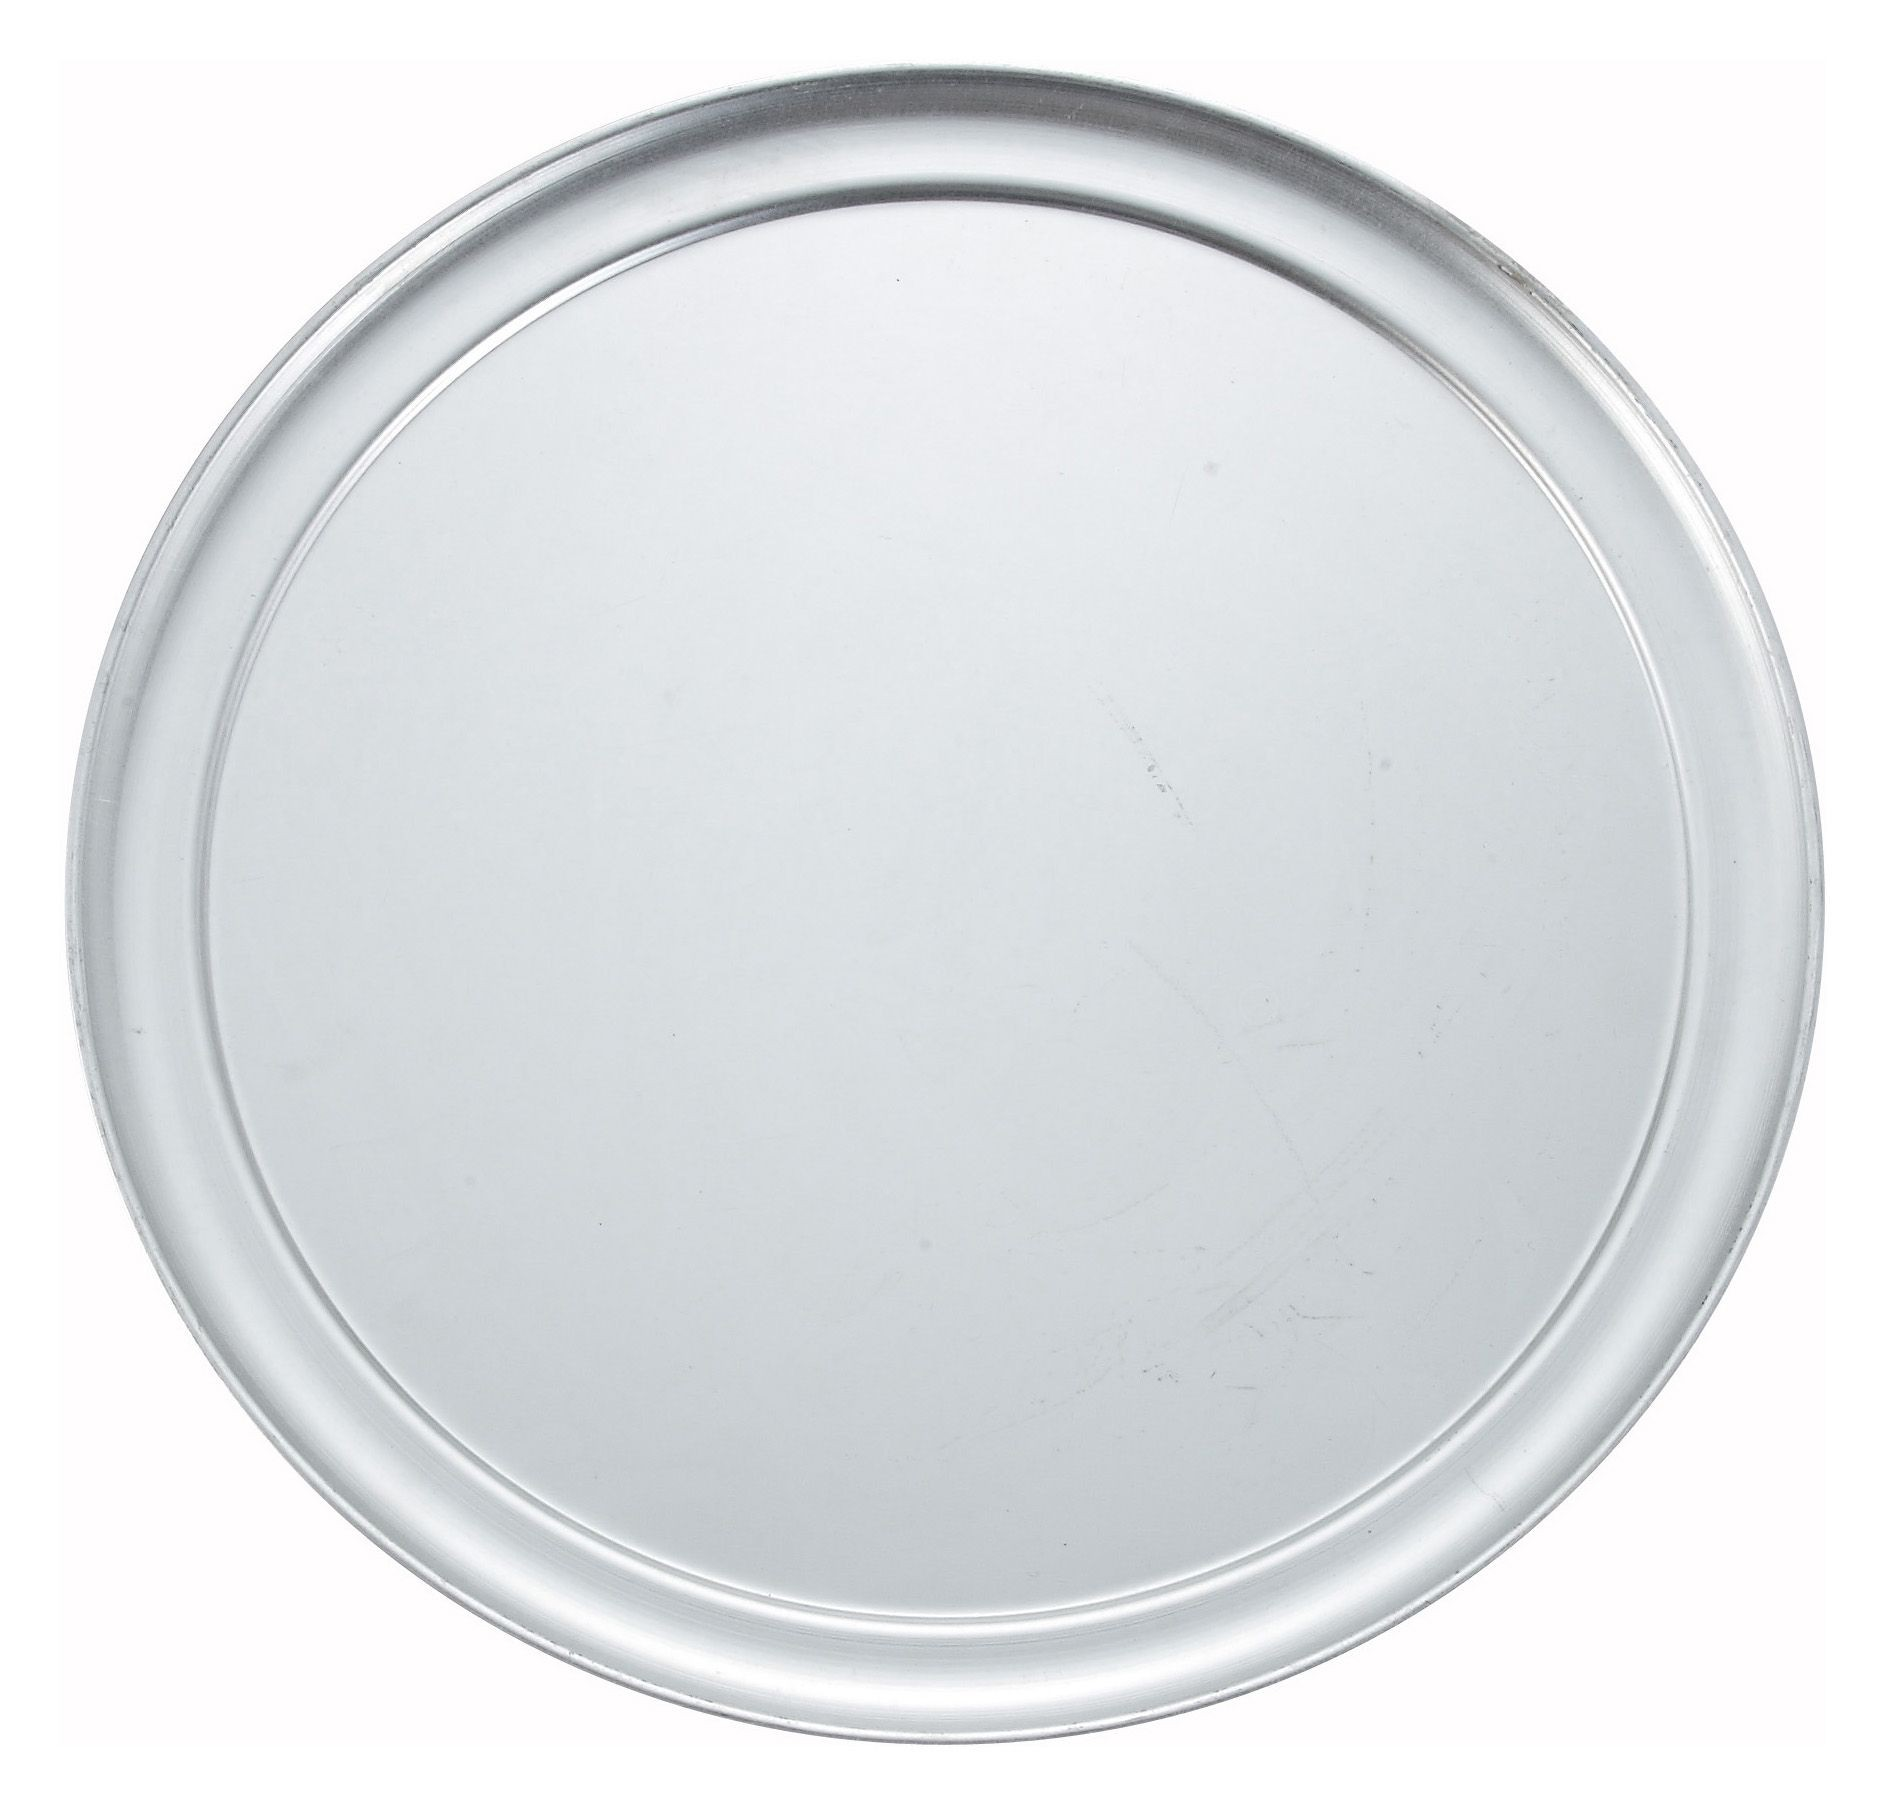 Wide-Rimmed Aluminum Pizza Pan - 15